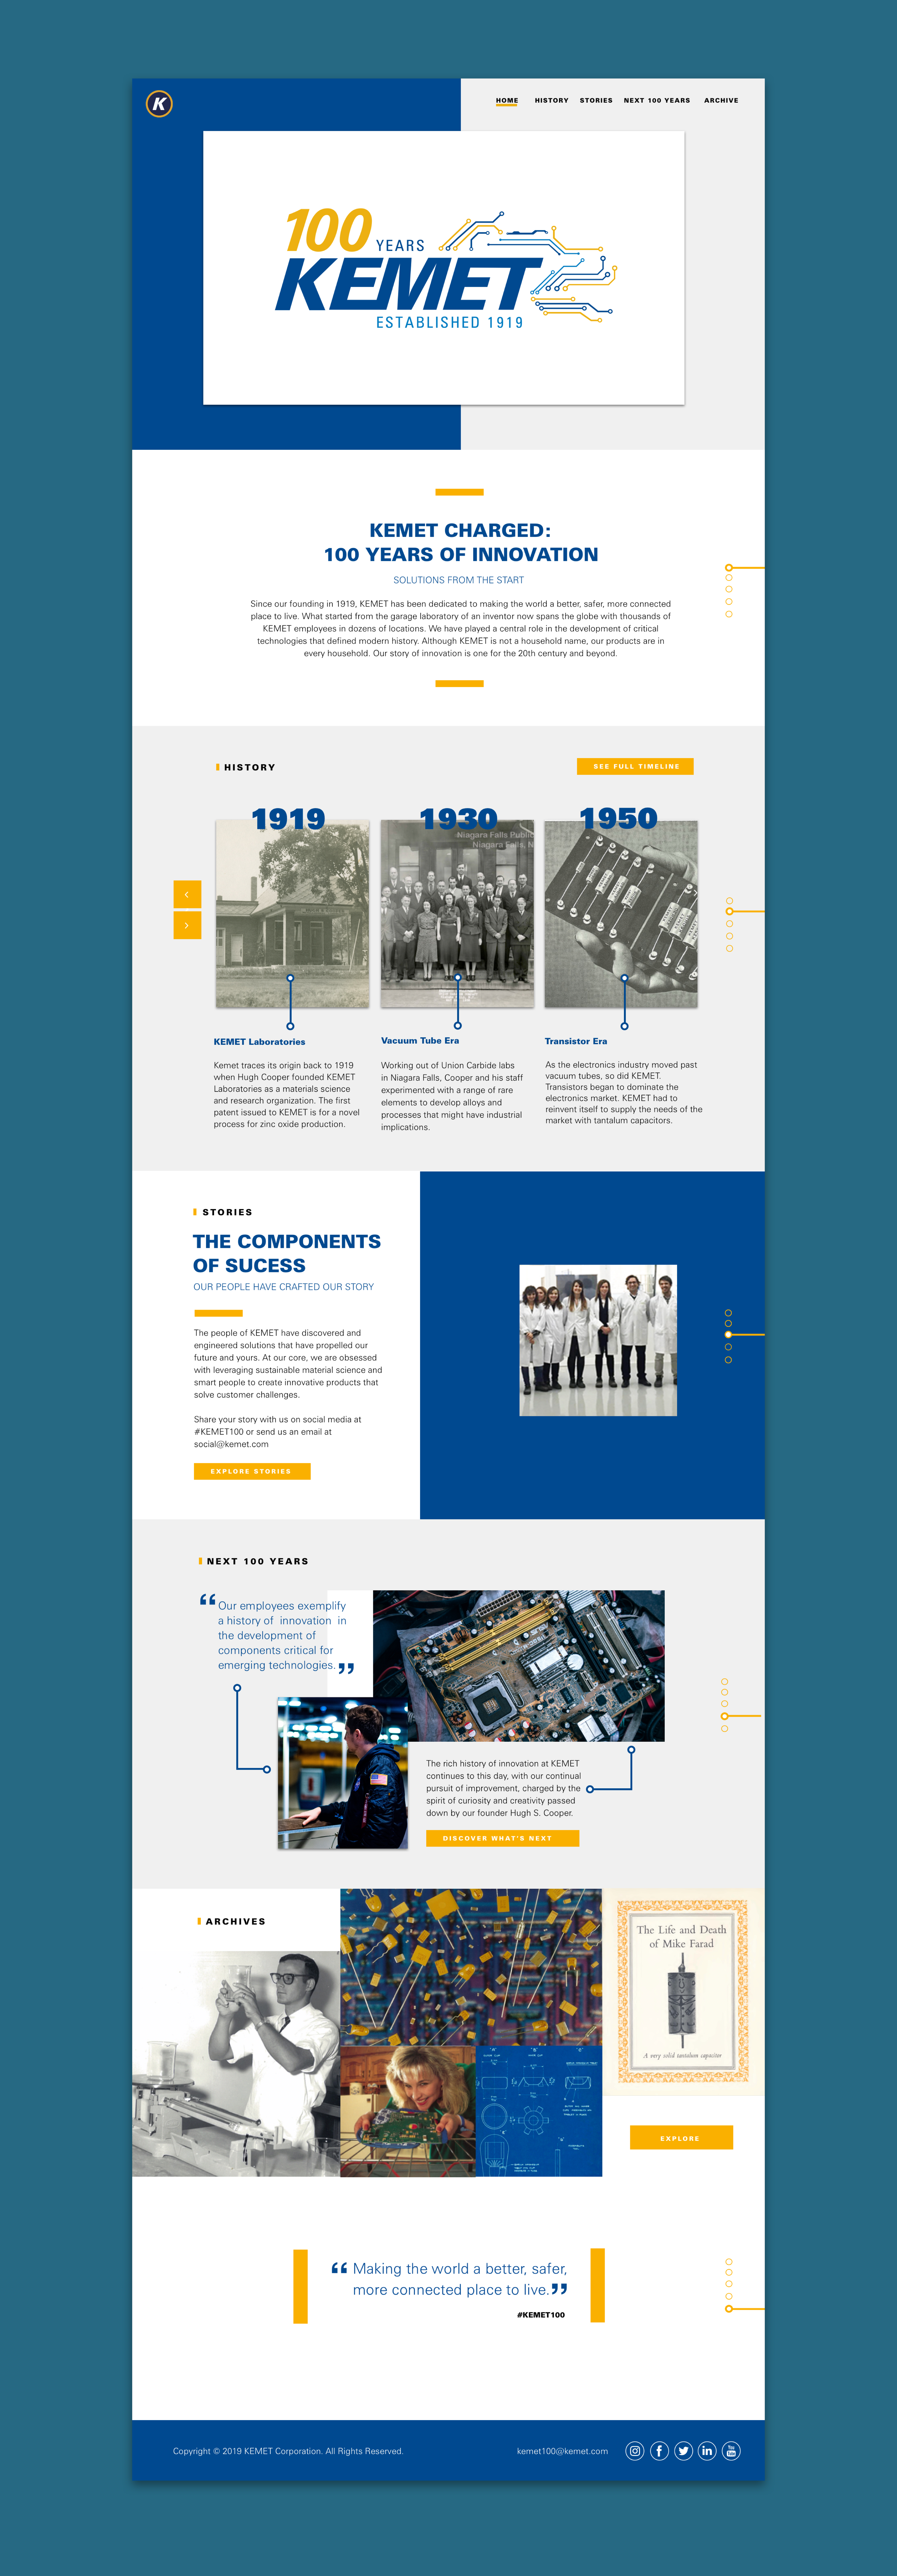 Full comp of the KEMET 100 Homepage design for desktop. It's a mix of white, blue, gray, and yellow. There are photos from the historical archives mixed with new technology.